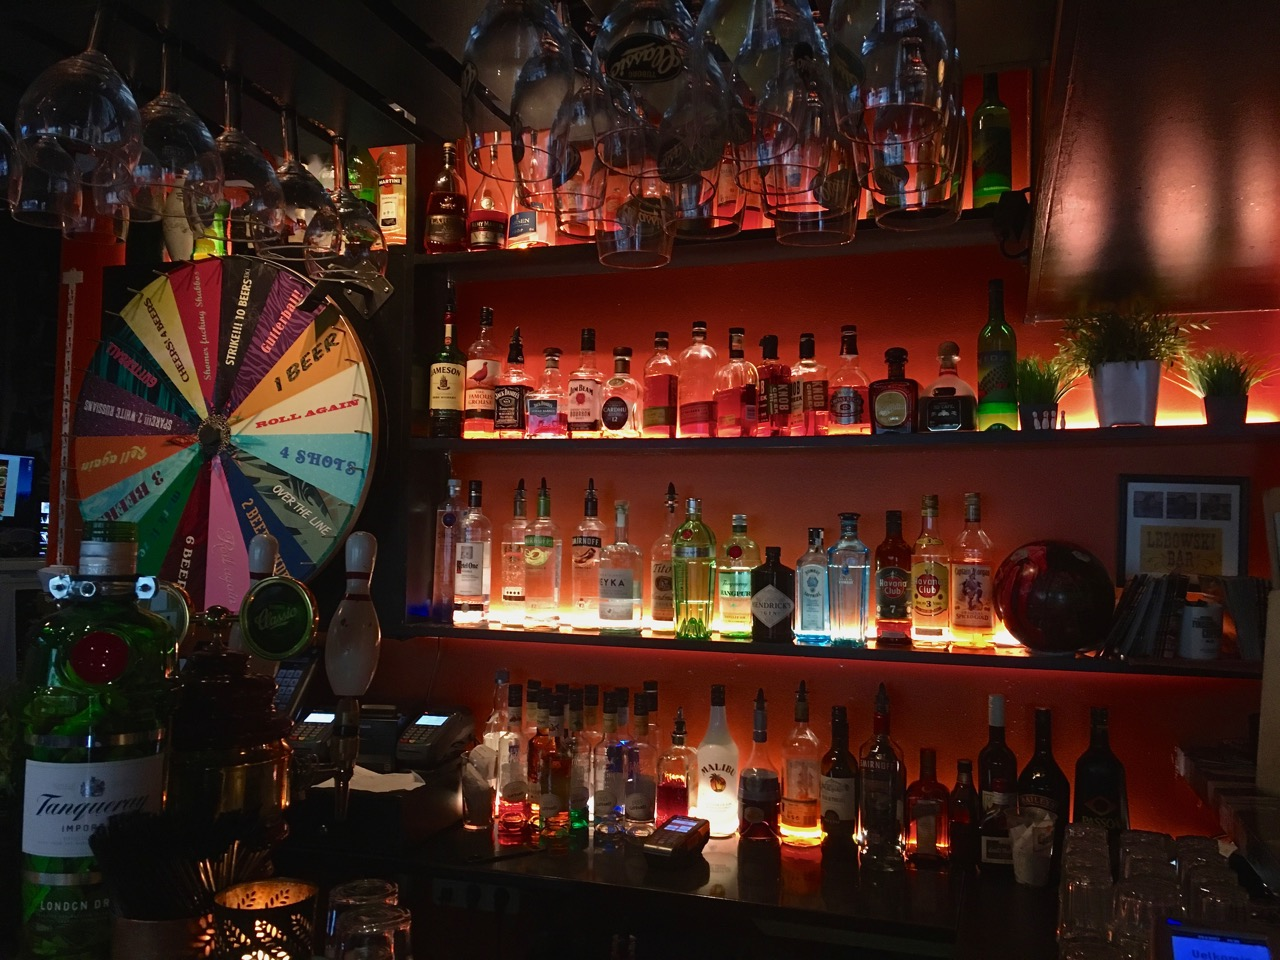 Feeling lucky? Spin the wheel in a Reykjavik bar and see how many beers YOU win